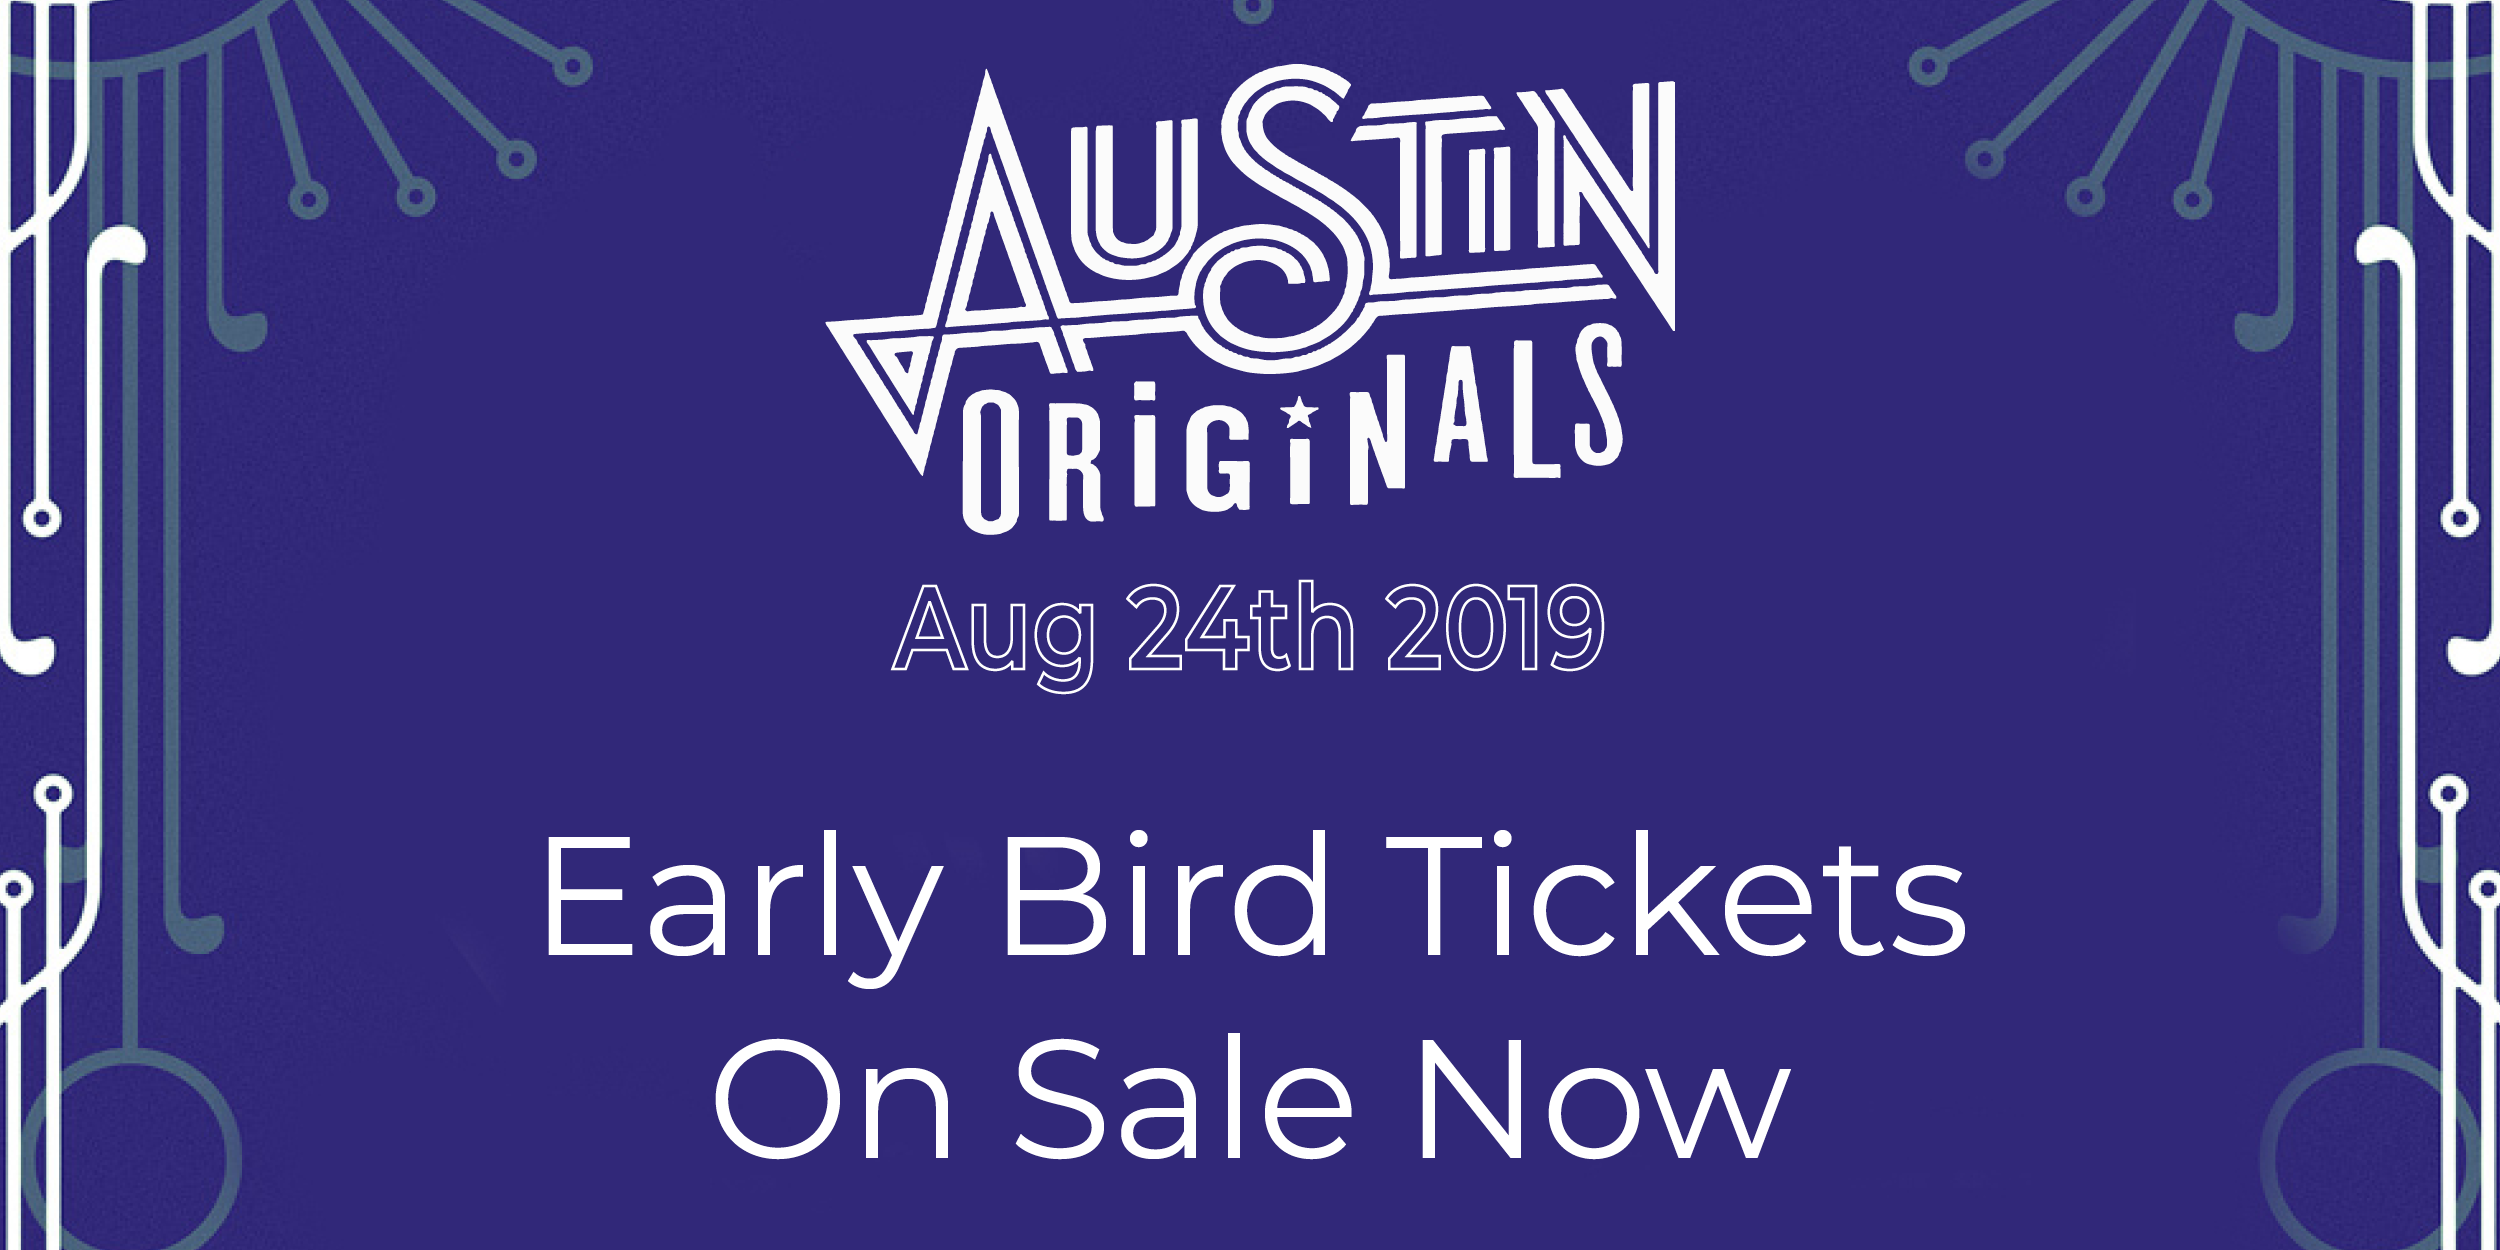 8th Annual Austin Originals Benefit Concert and Live Stream